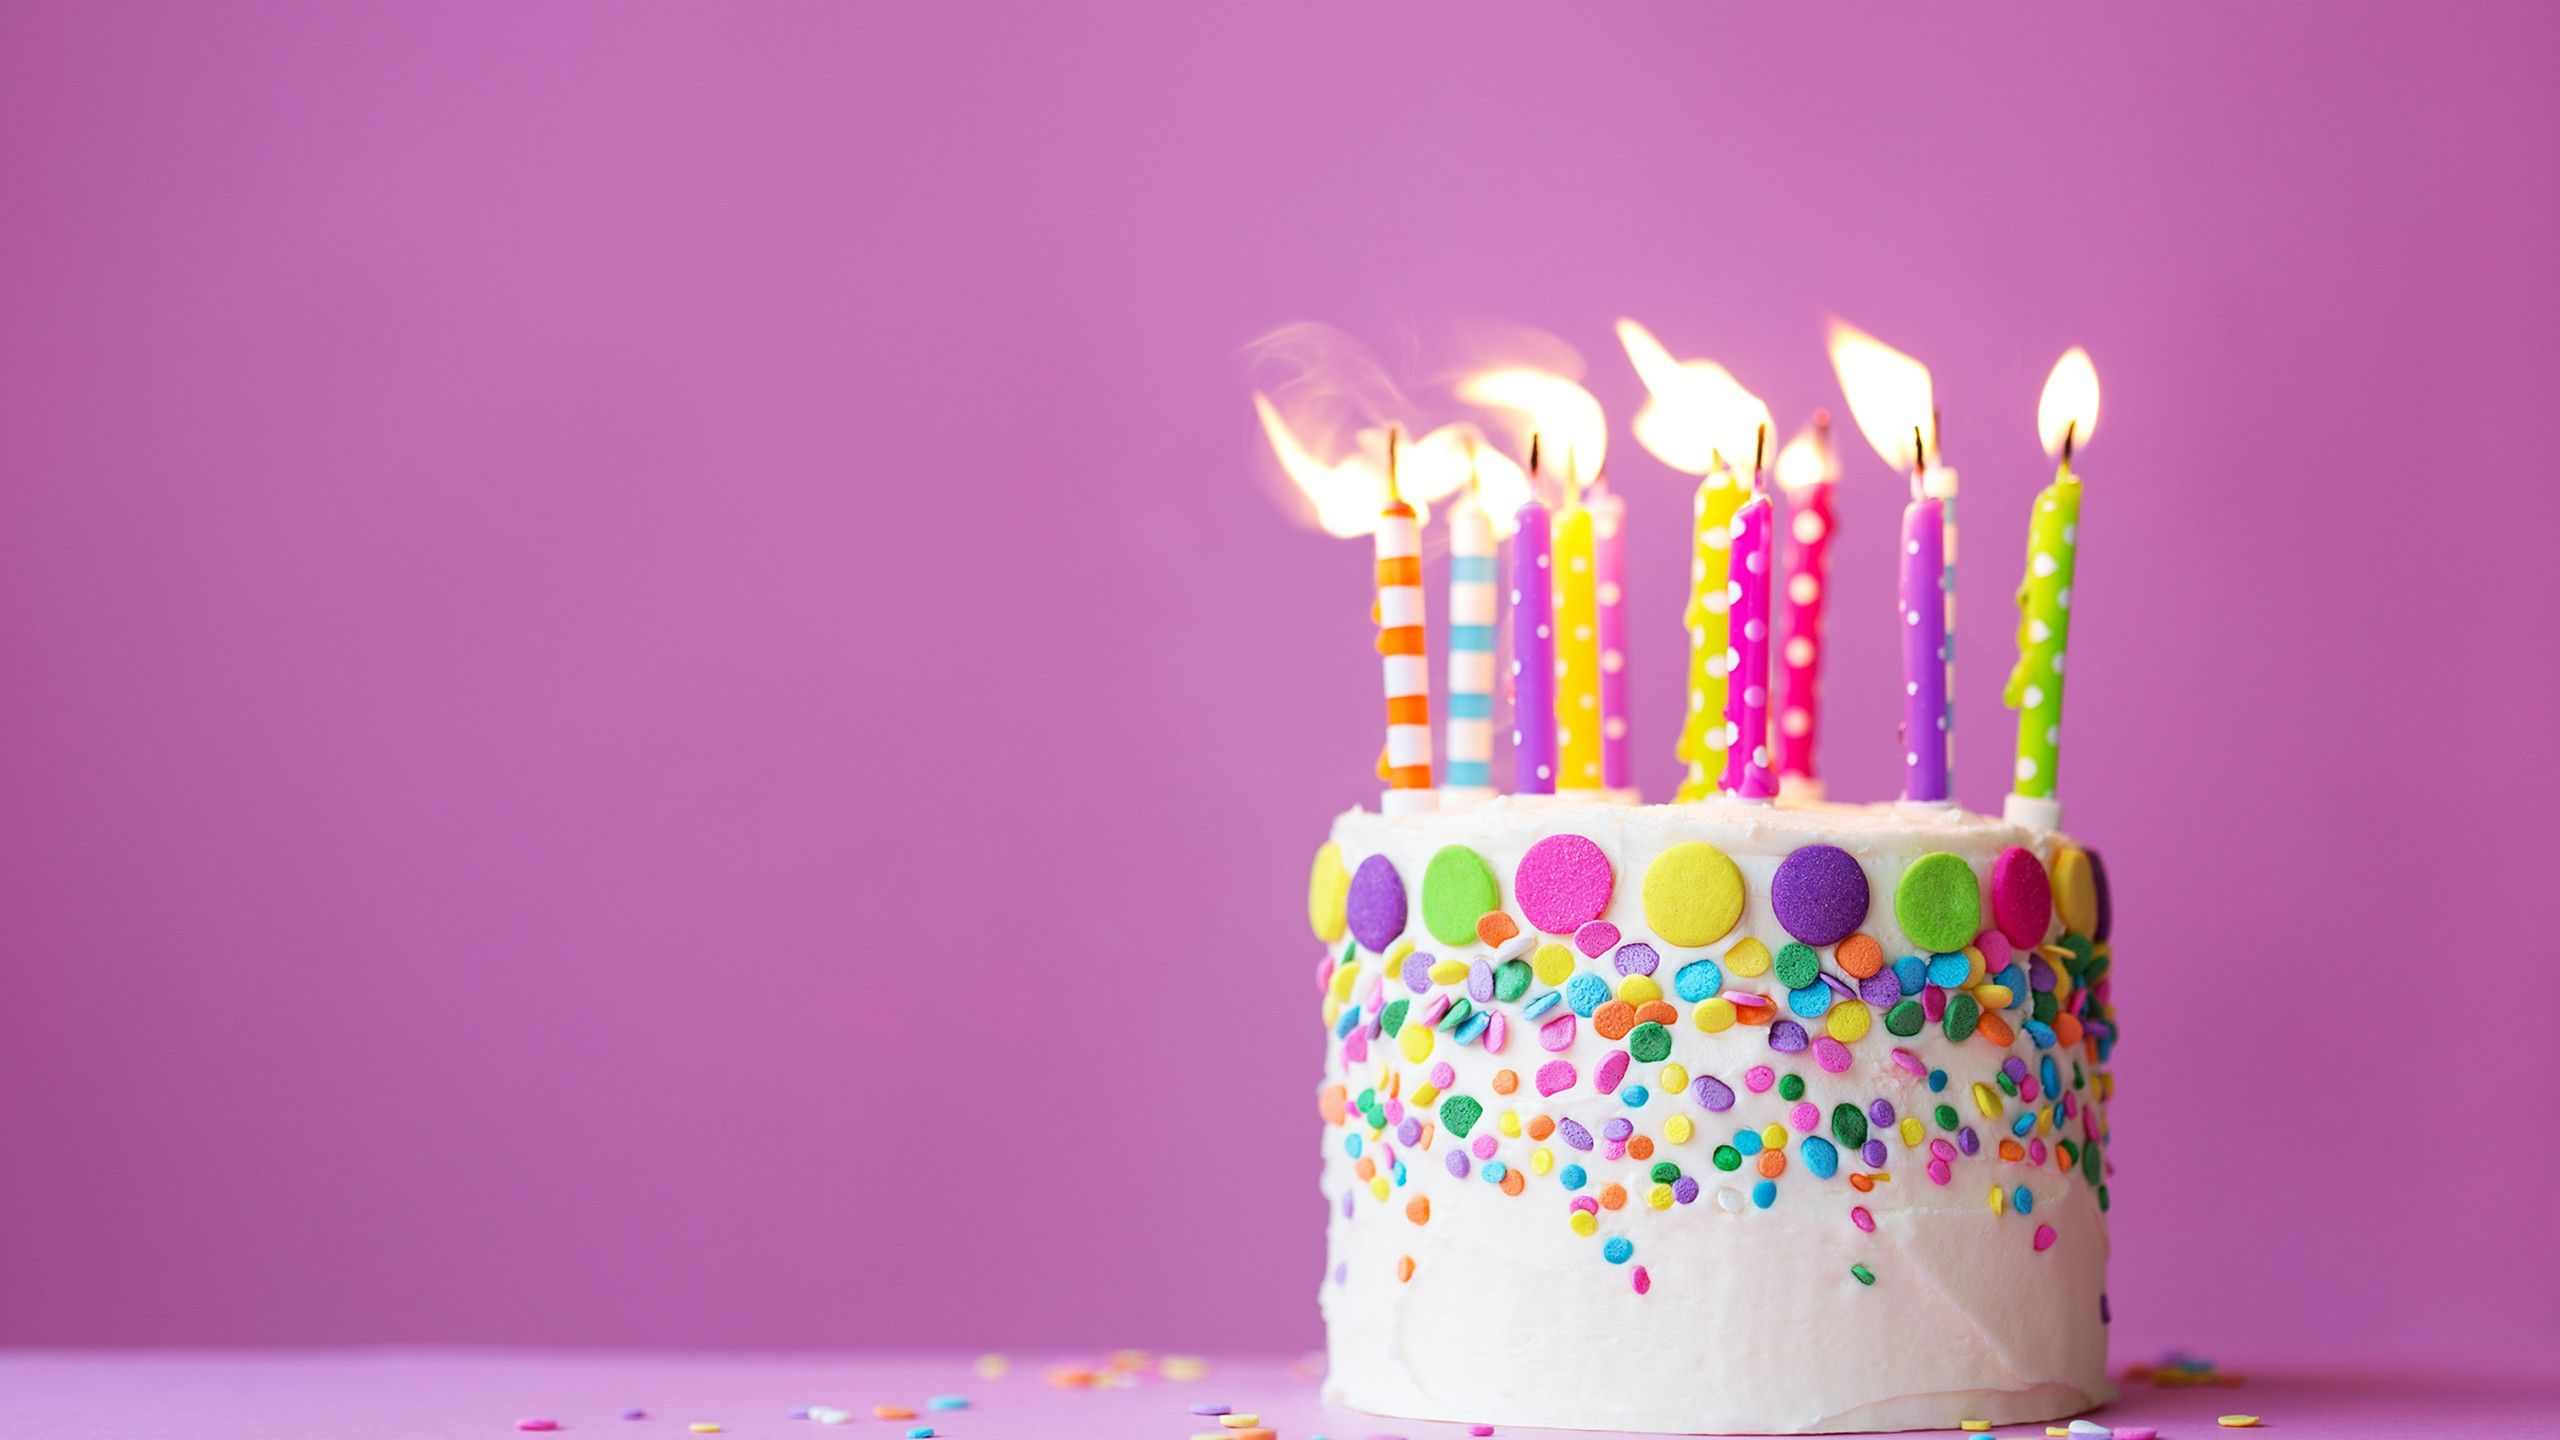 birthday cake wallpaper images ; 1a0f826199c21f5d46cd4bc44cee98fd